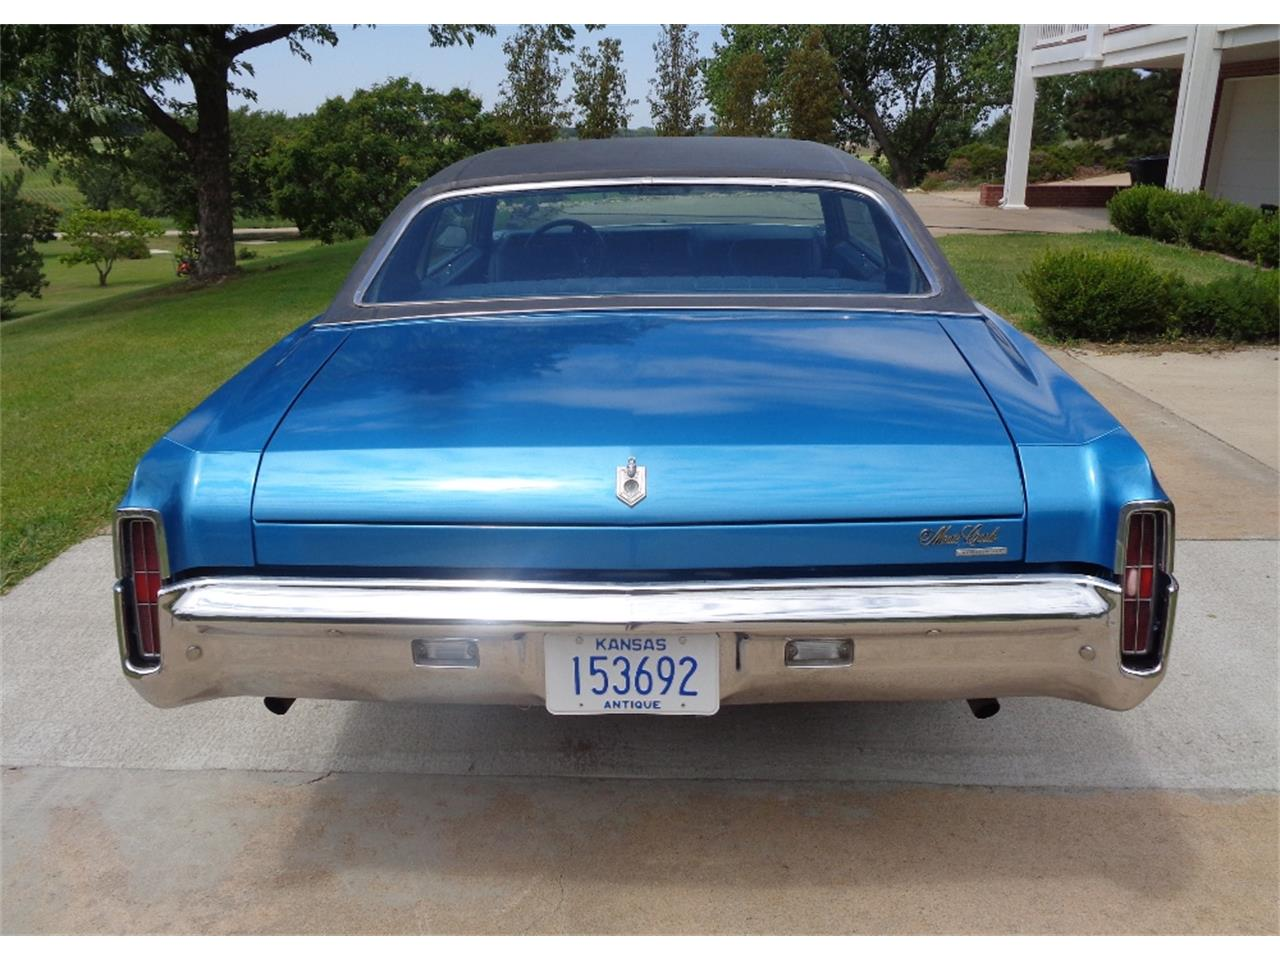 1971 Chevrolet Monte Carlo (CC-1388466) for sale in GREAT BEND, Kansas